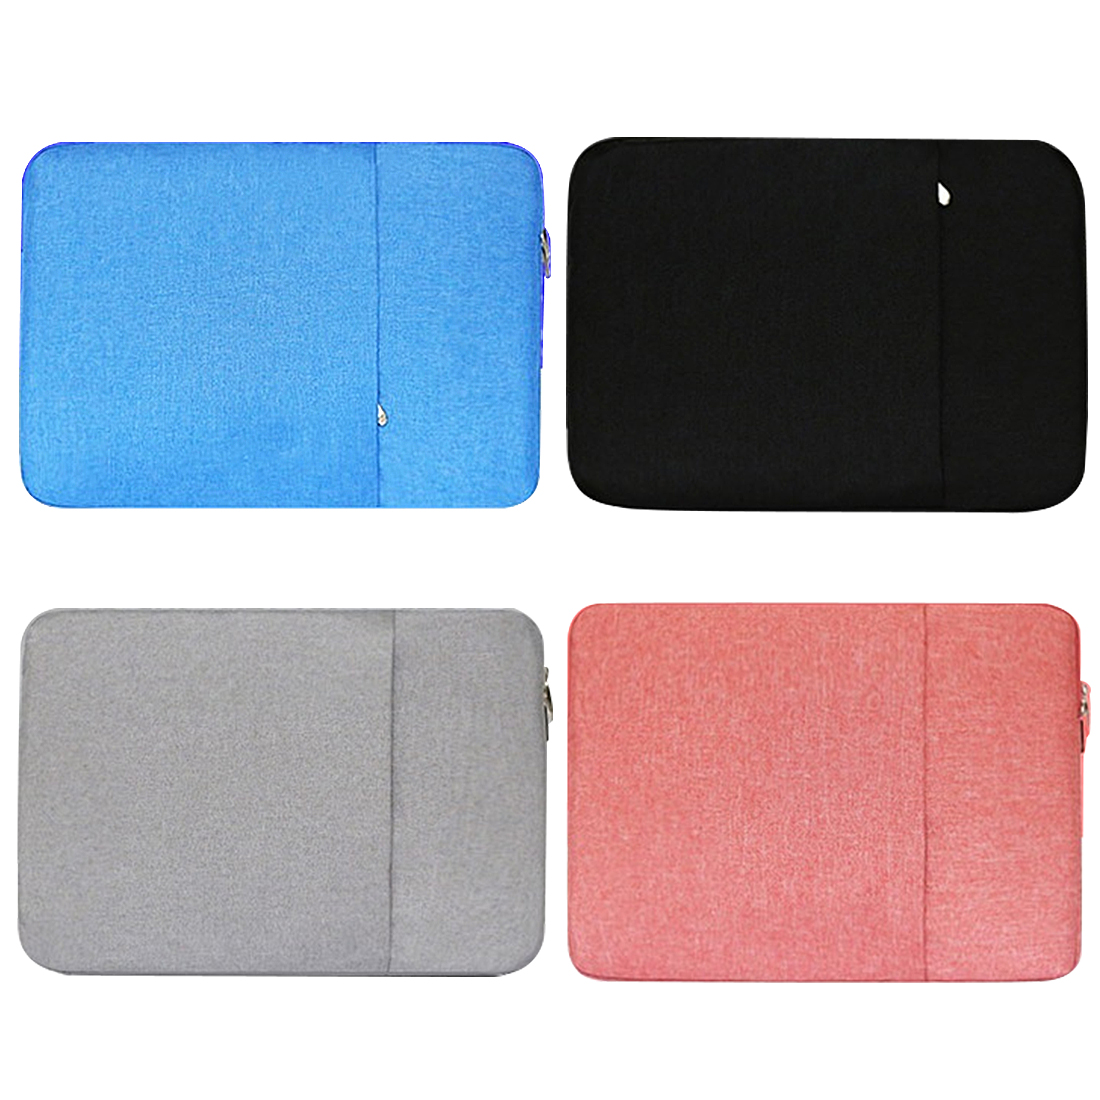 High Quality Laptop Sleeve Notebook Bag Pouch Case for Macbook Air 11 13 15 Universal Liner Sleeve for Laptop Macbook